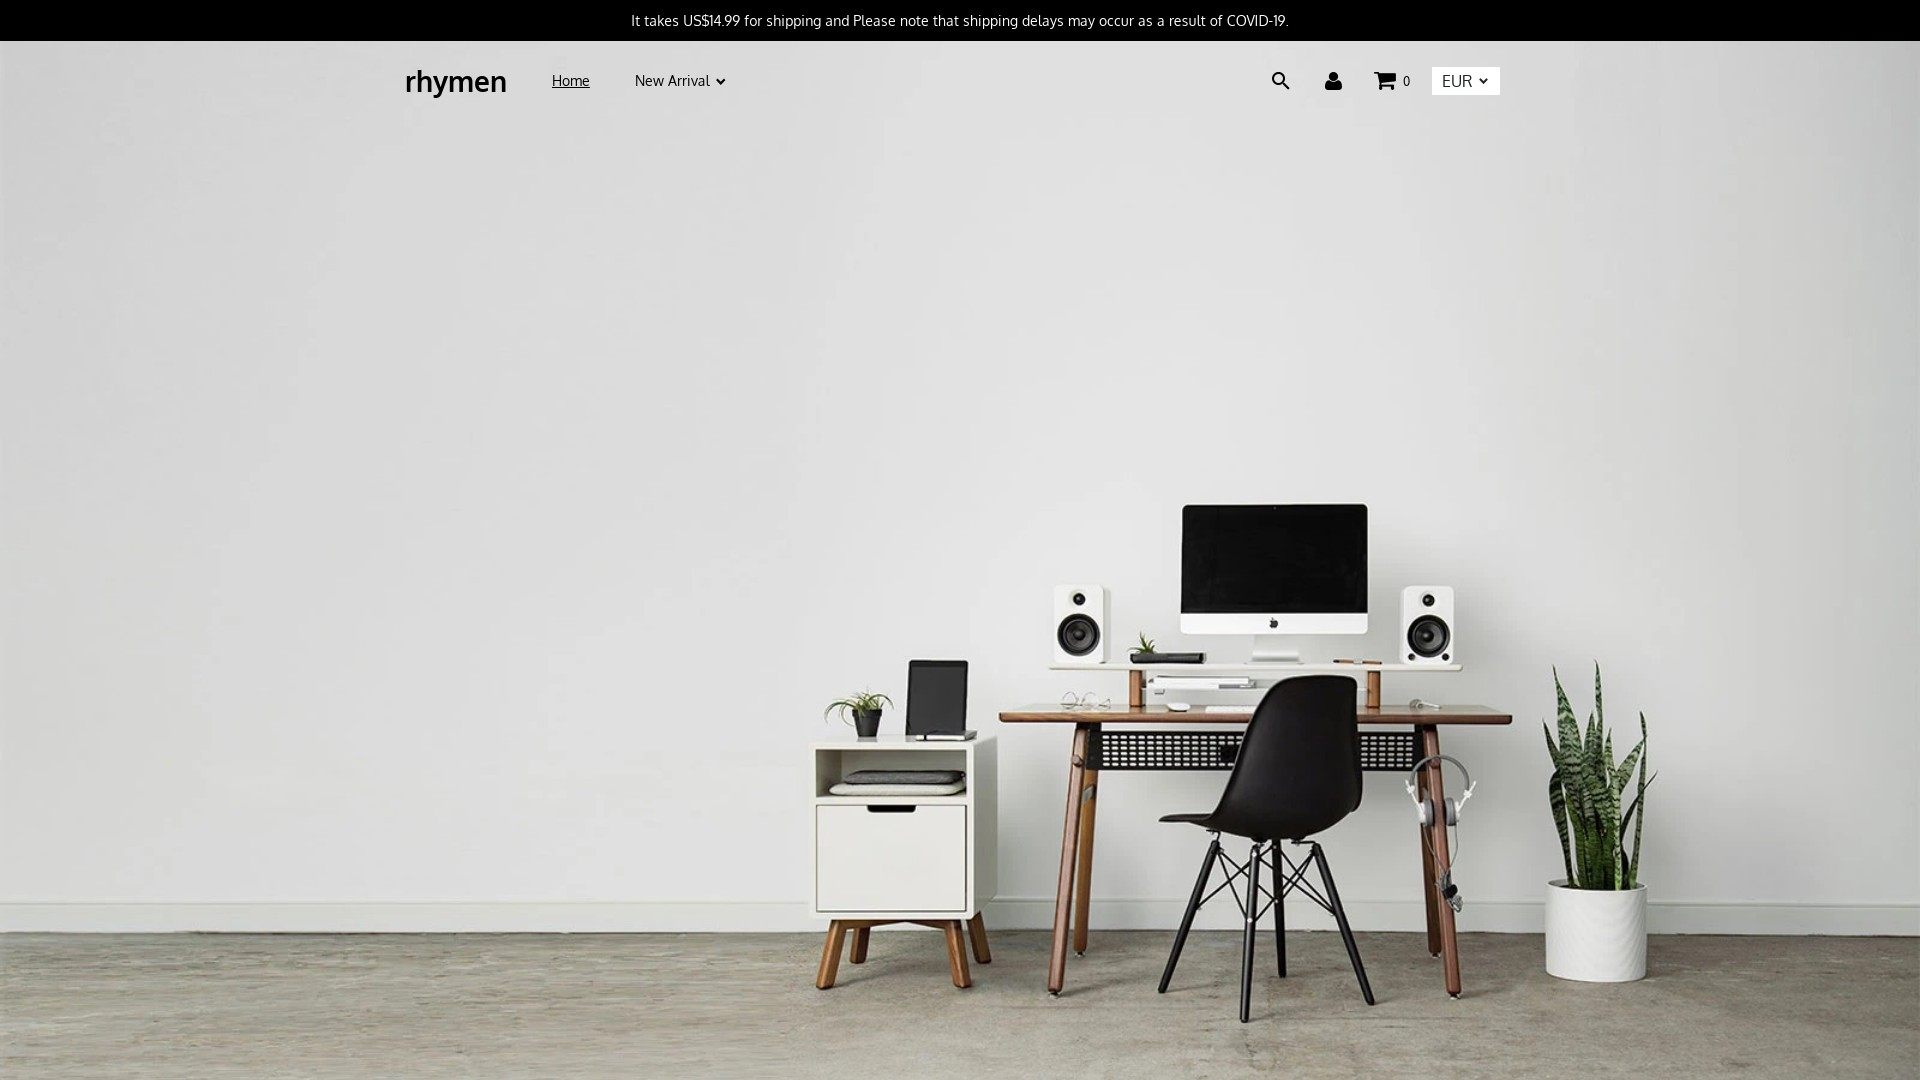 Is Rhymen a Scam? Review of the Online Store